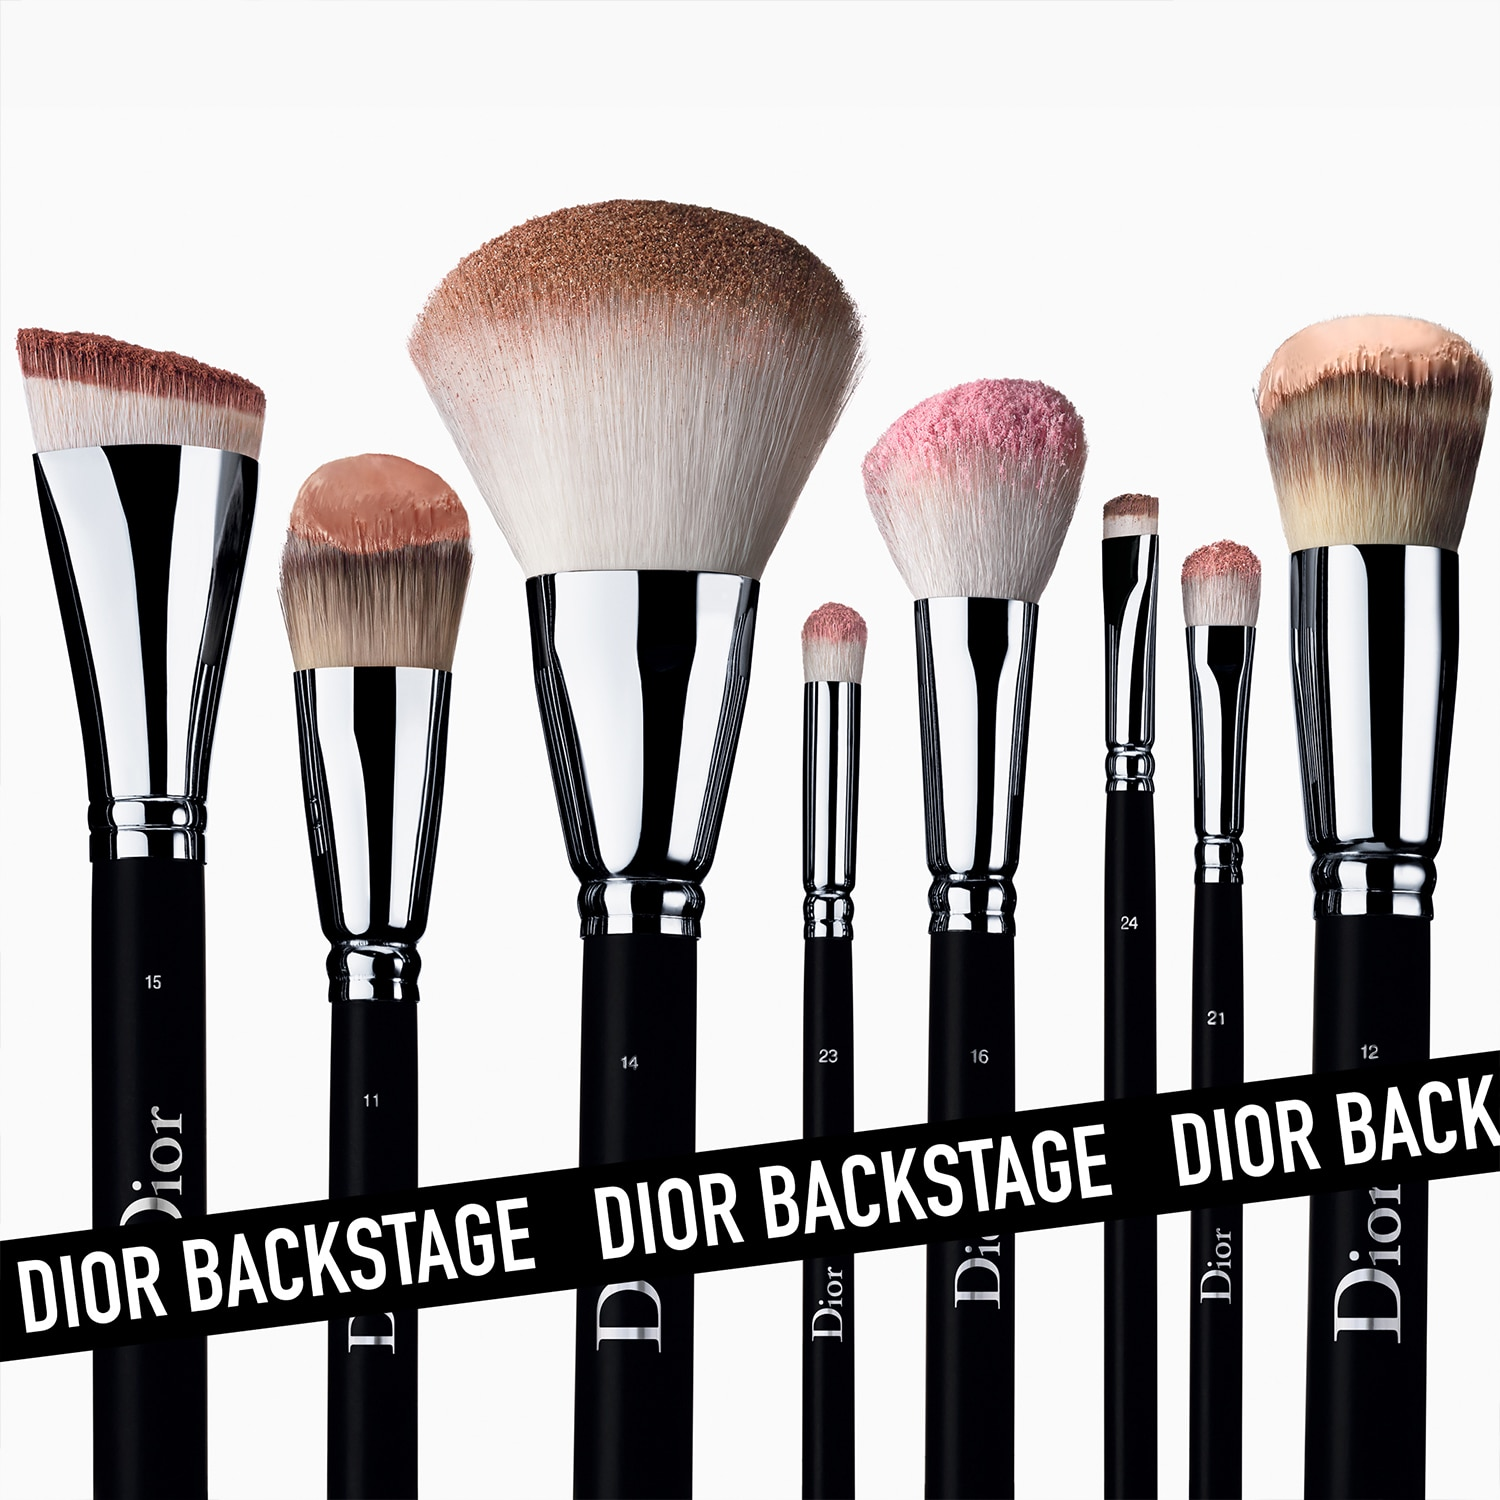 DIOR BACKSTAGE LIGHT COVERAGE FDT  BRUSH NO. 11